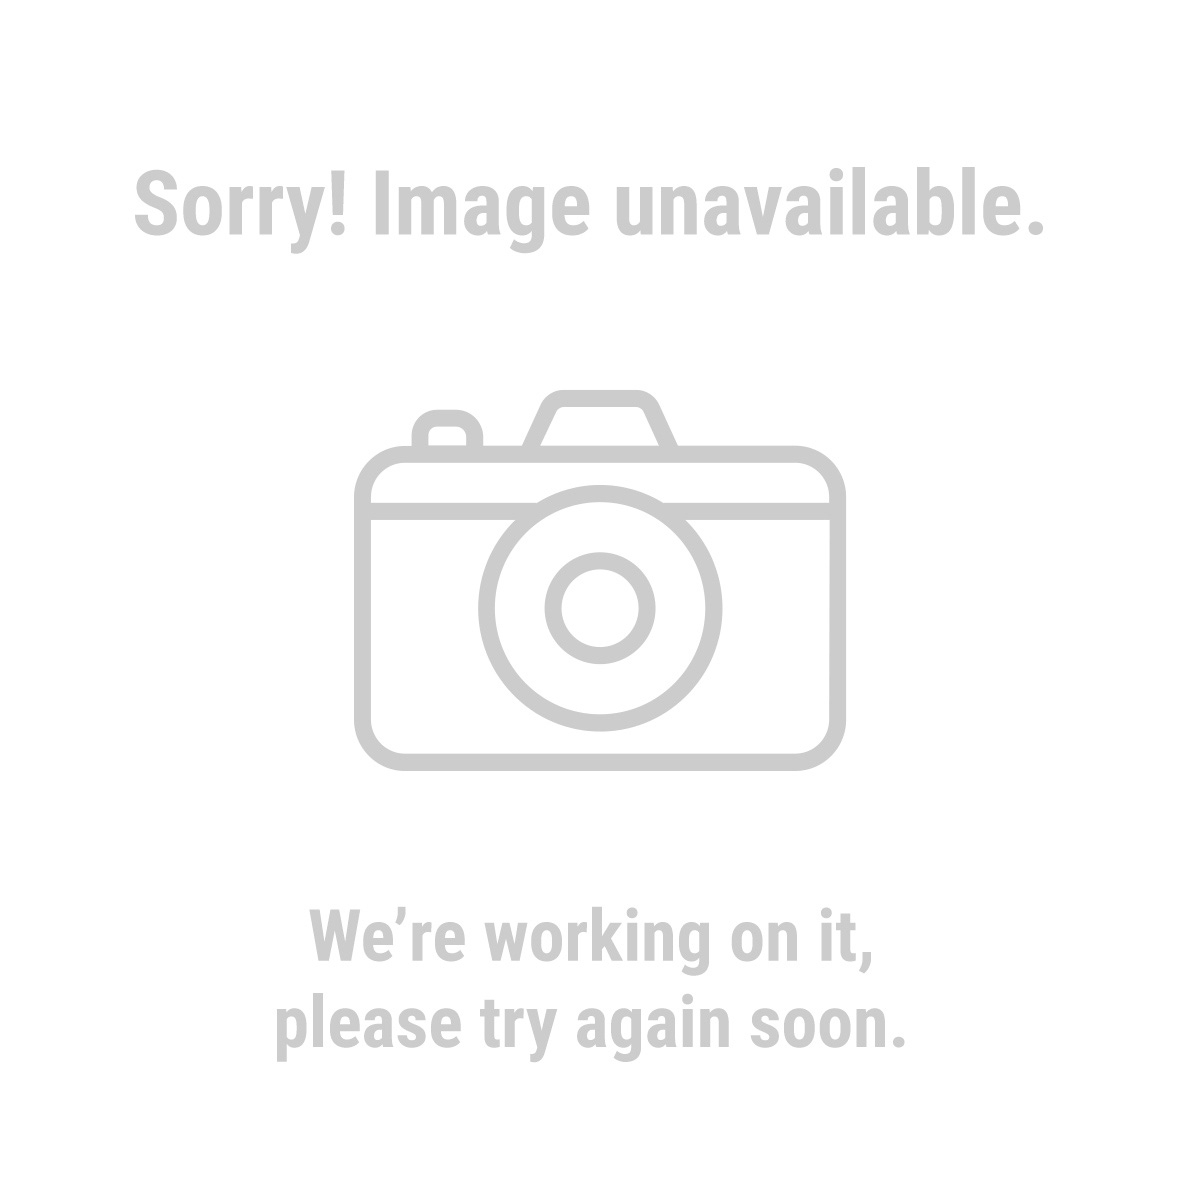 Admiral 62734 7-1/4 in. 40T Finishing Circular Saw Blade